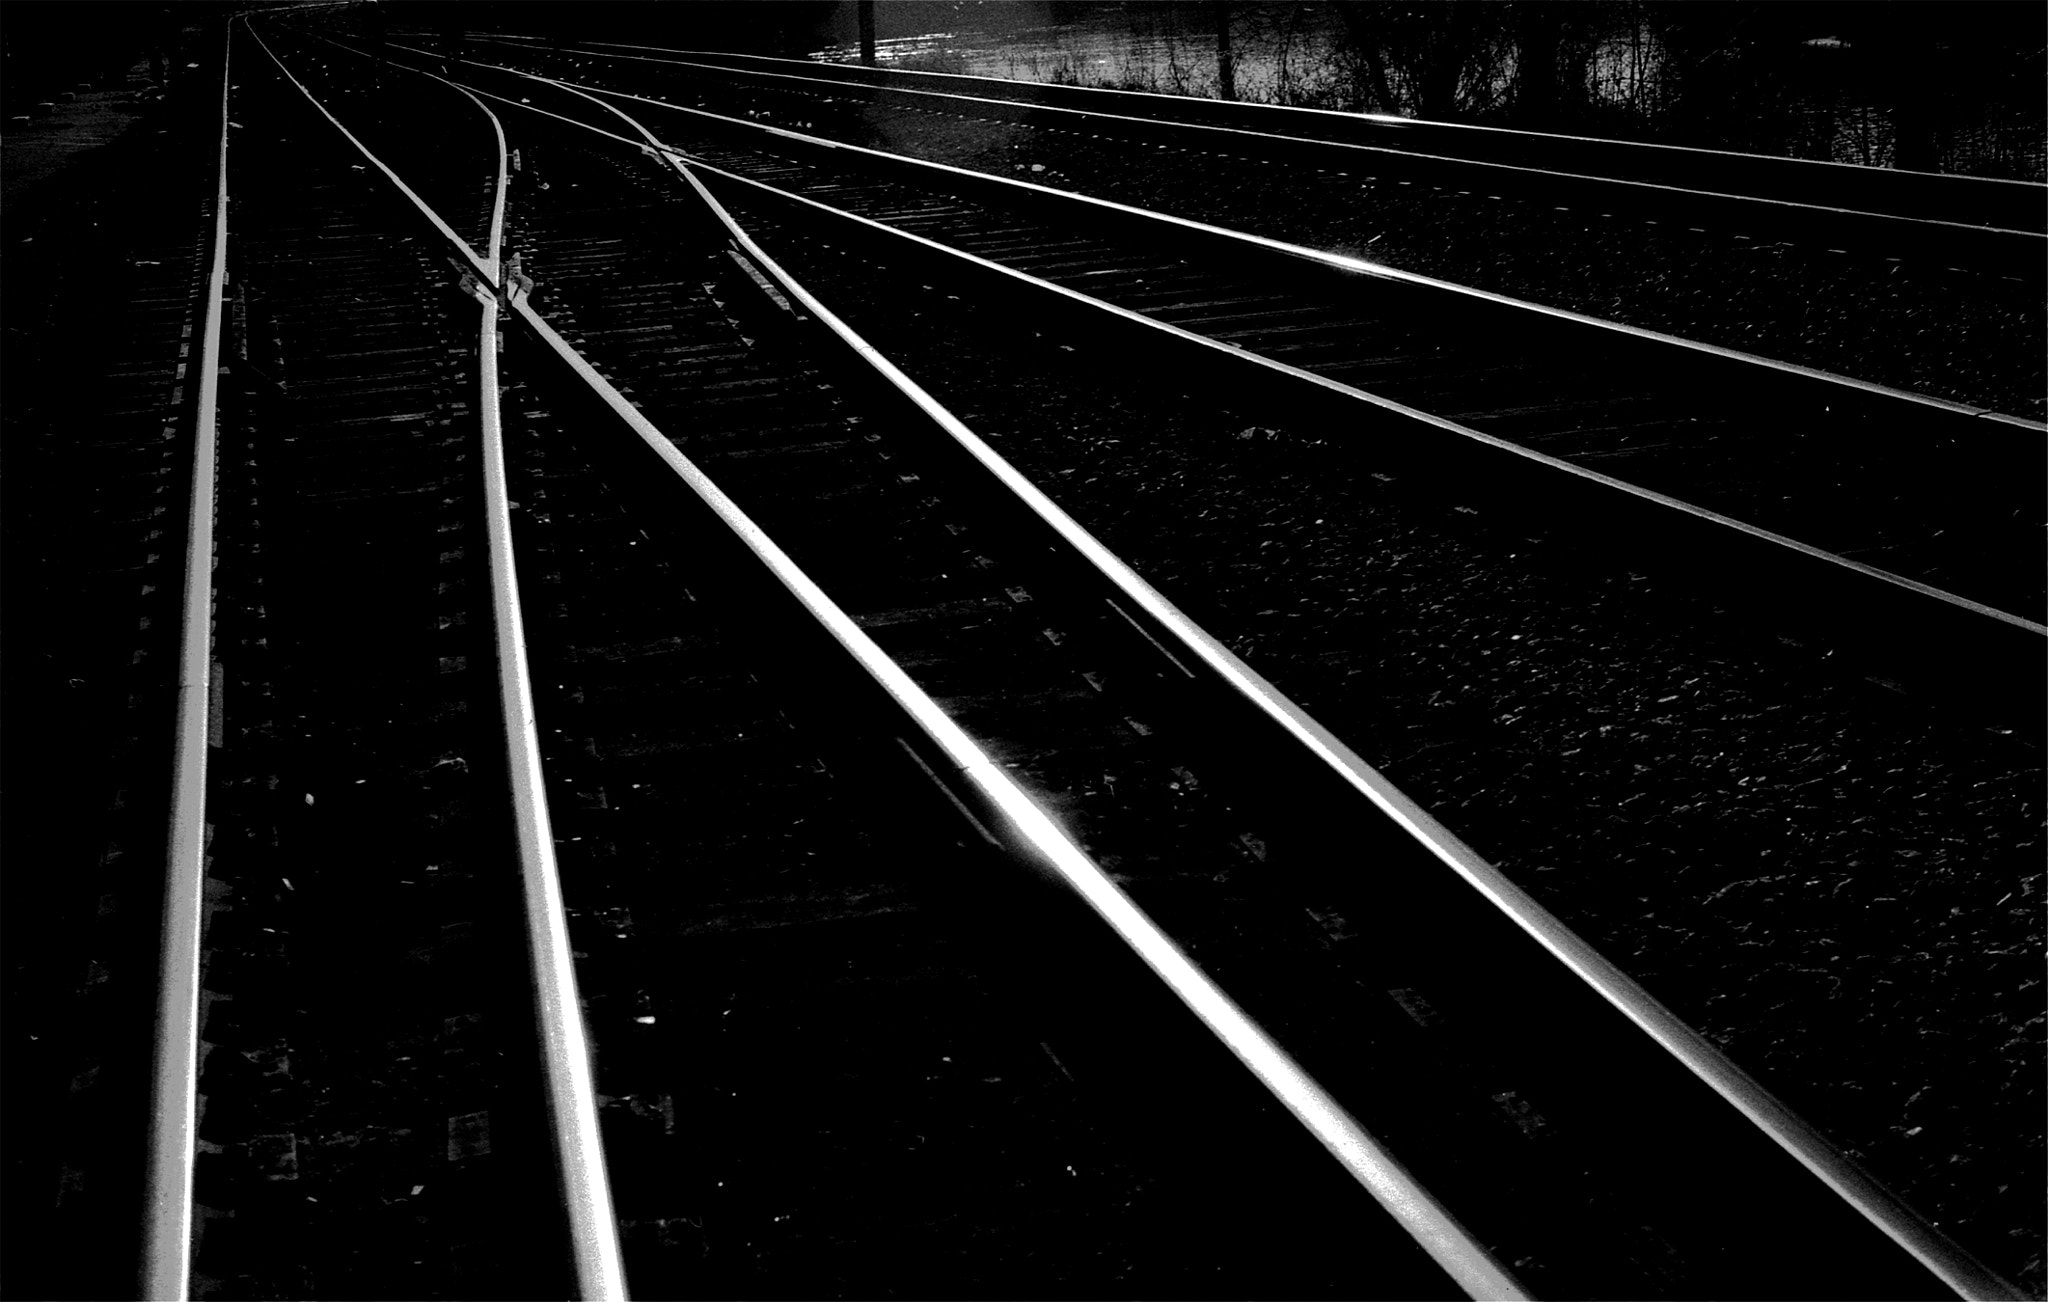 Photograph Tracks by Gene Myers on 500px